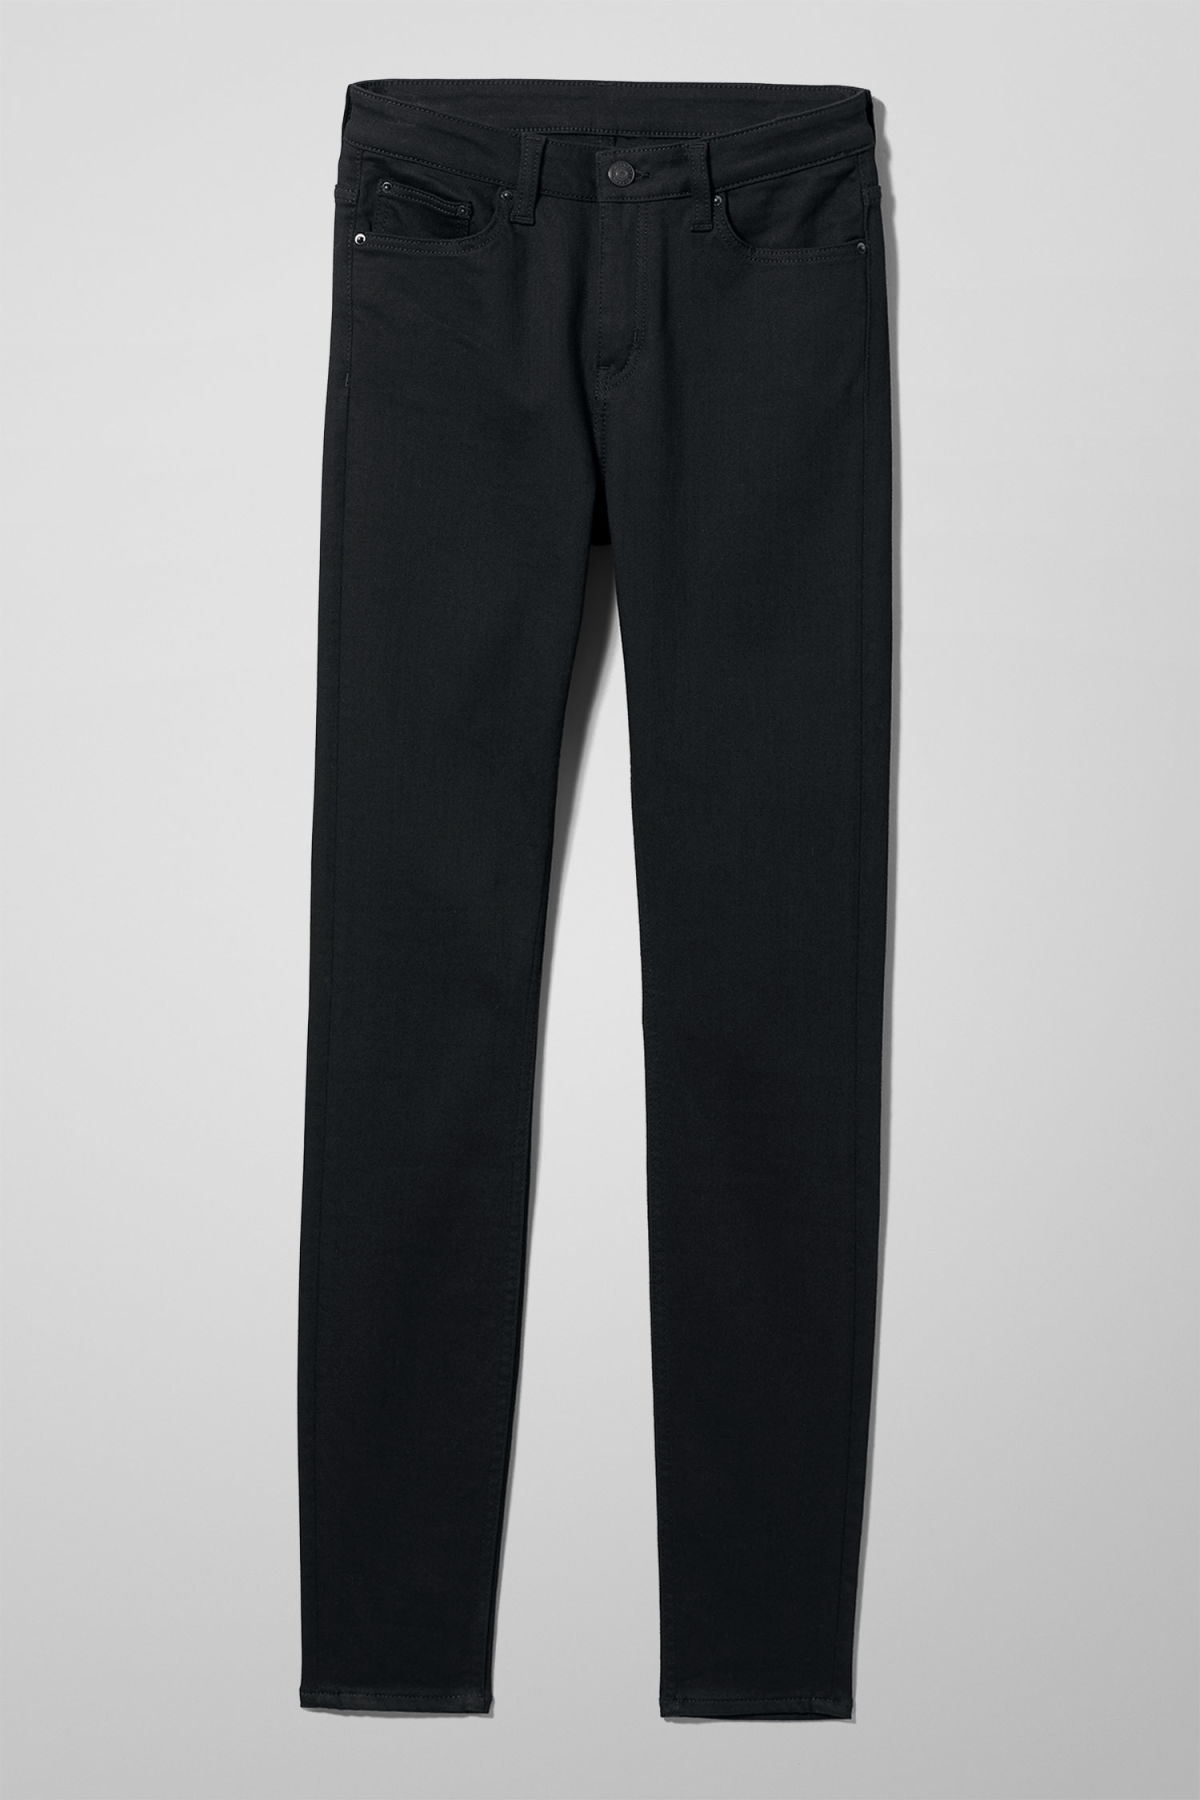 Front image of Weekday body stay black jeans in black